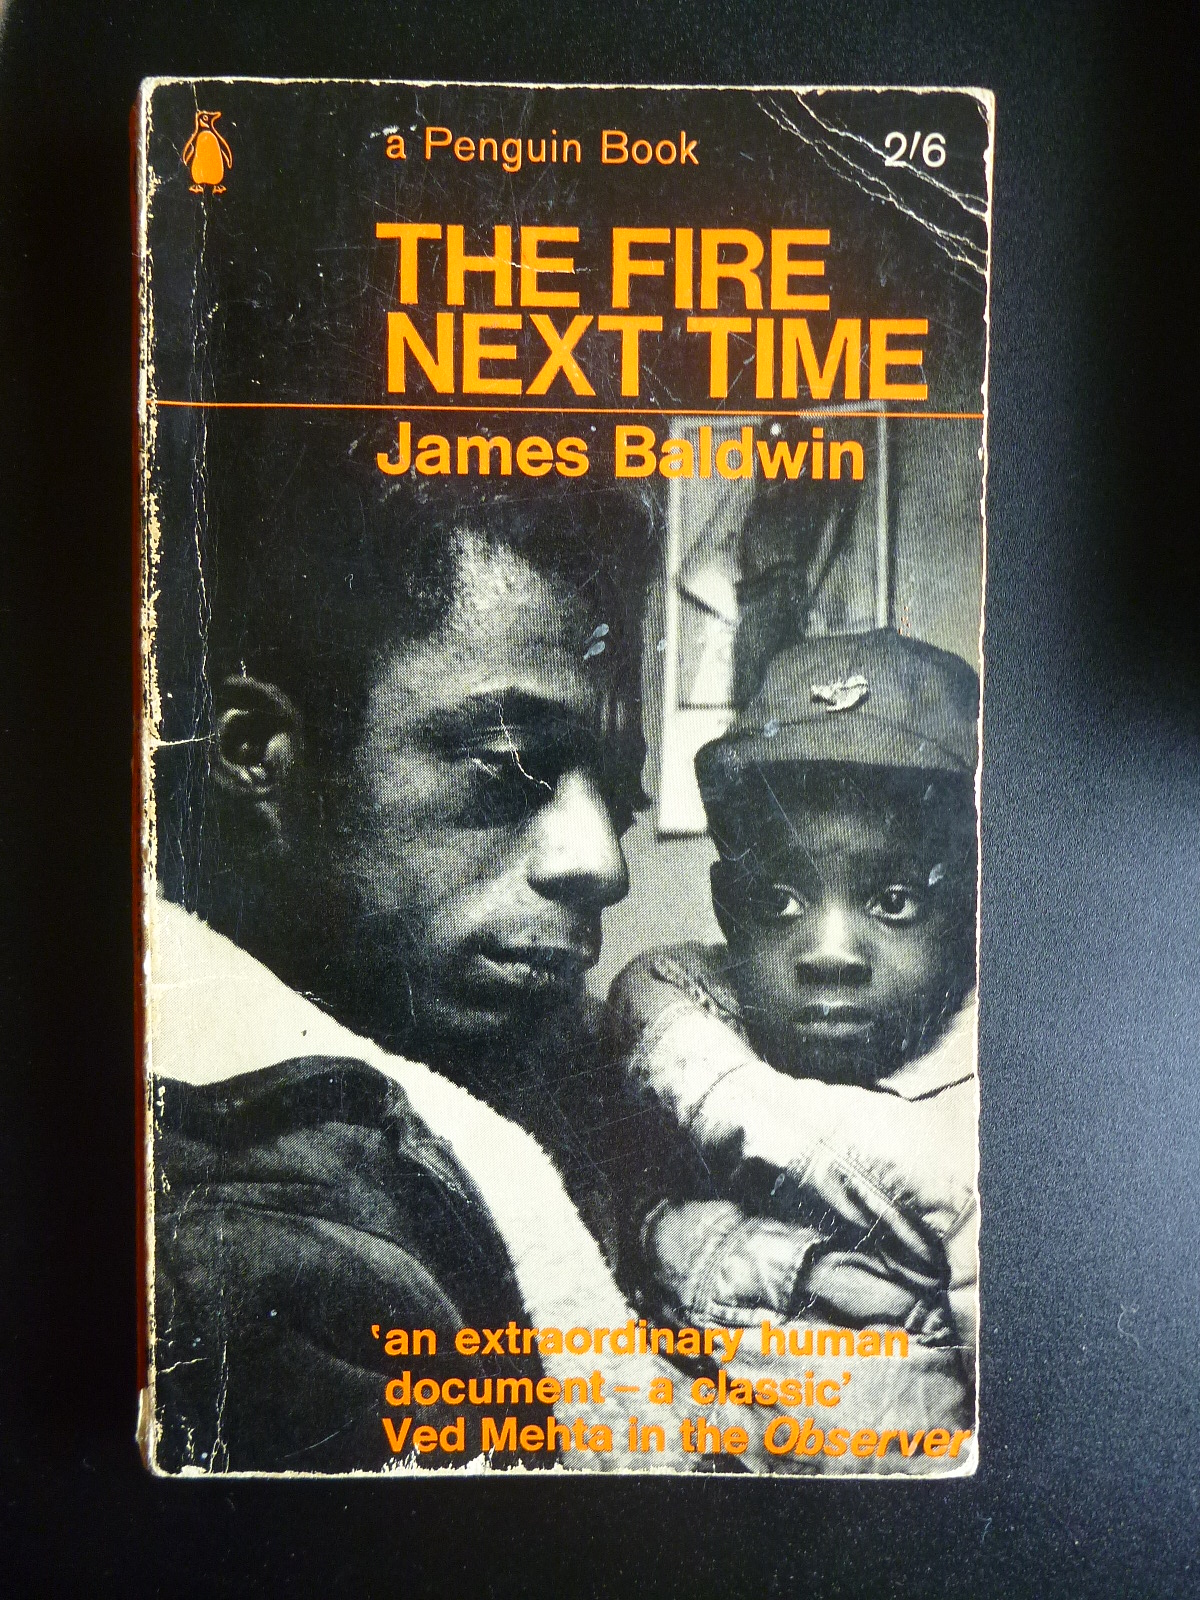 the teaching of james baldwins the fire next time Featuring classroom-ready james baldwin lesson these video clips appear under baldwin on the pbs learningmedia -- includes text from the fire next time.